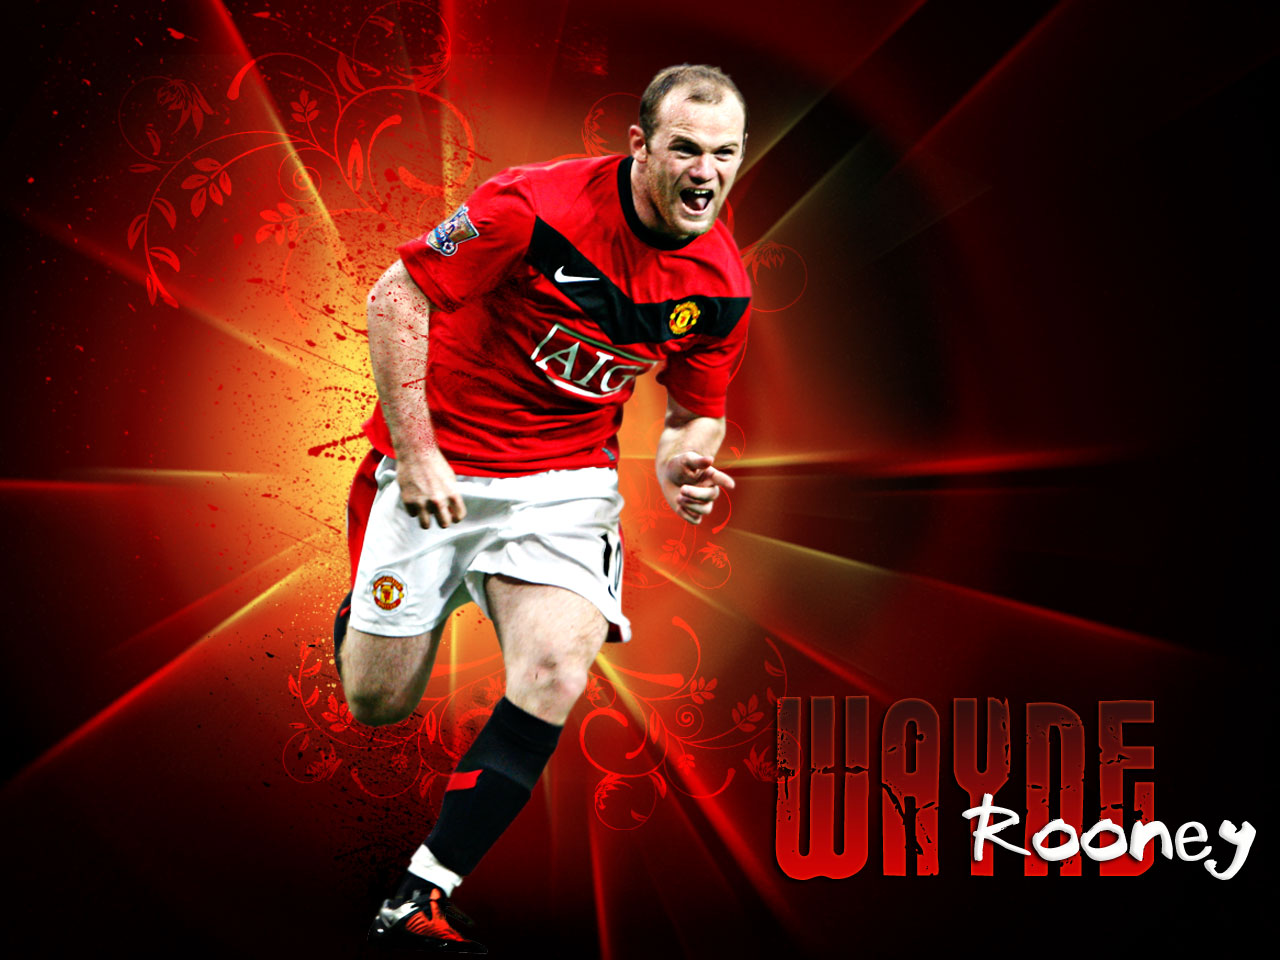 Wayne Rooney Wallpaper Wayne Rooney Wallpaper